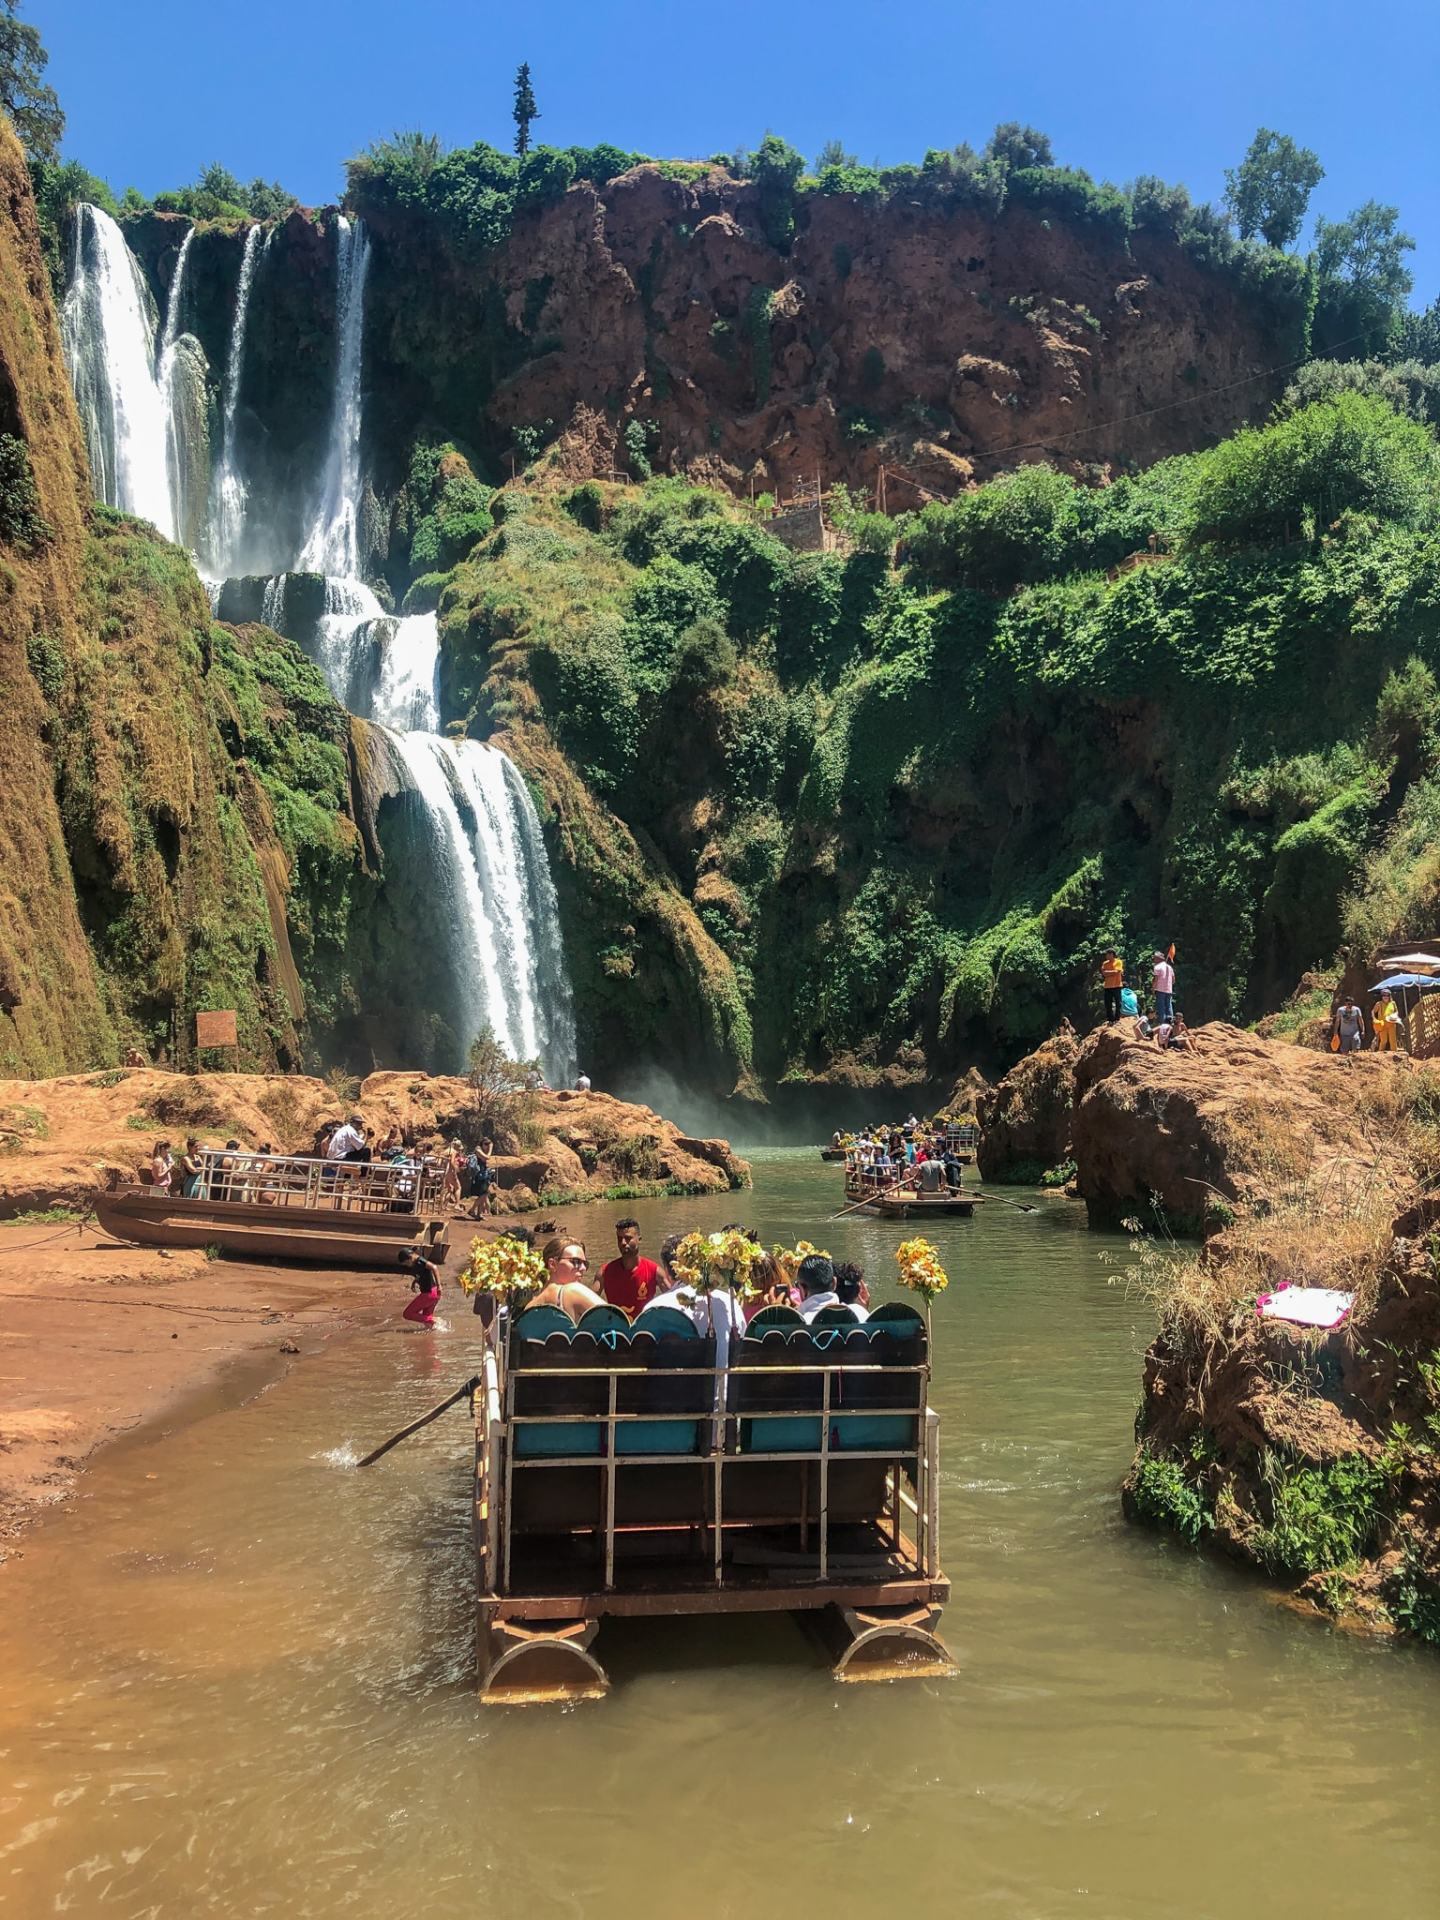 Boat ride at The Ouzoud Waterfalls